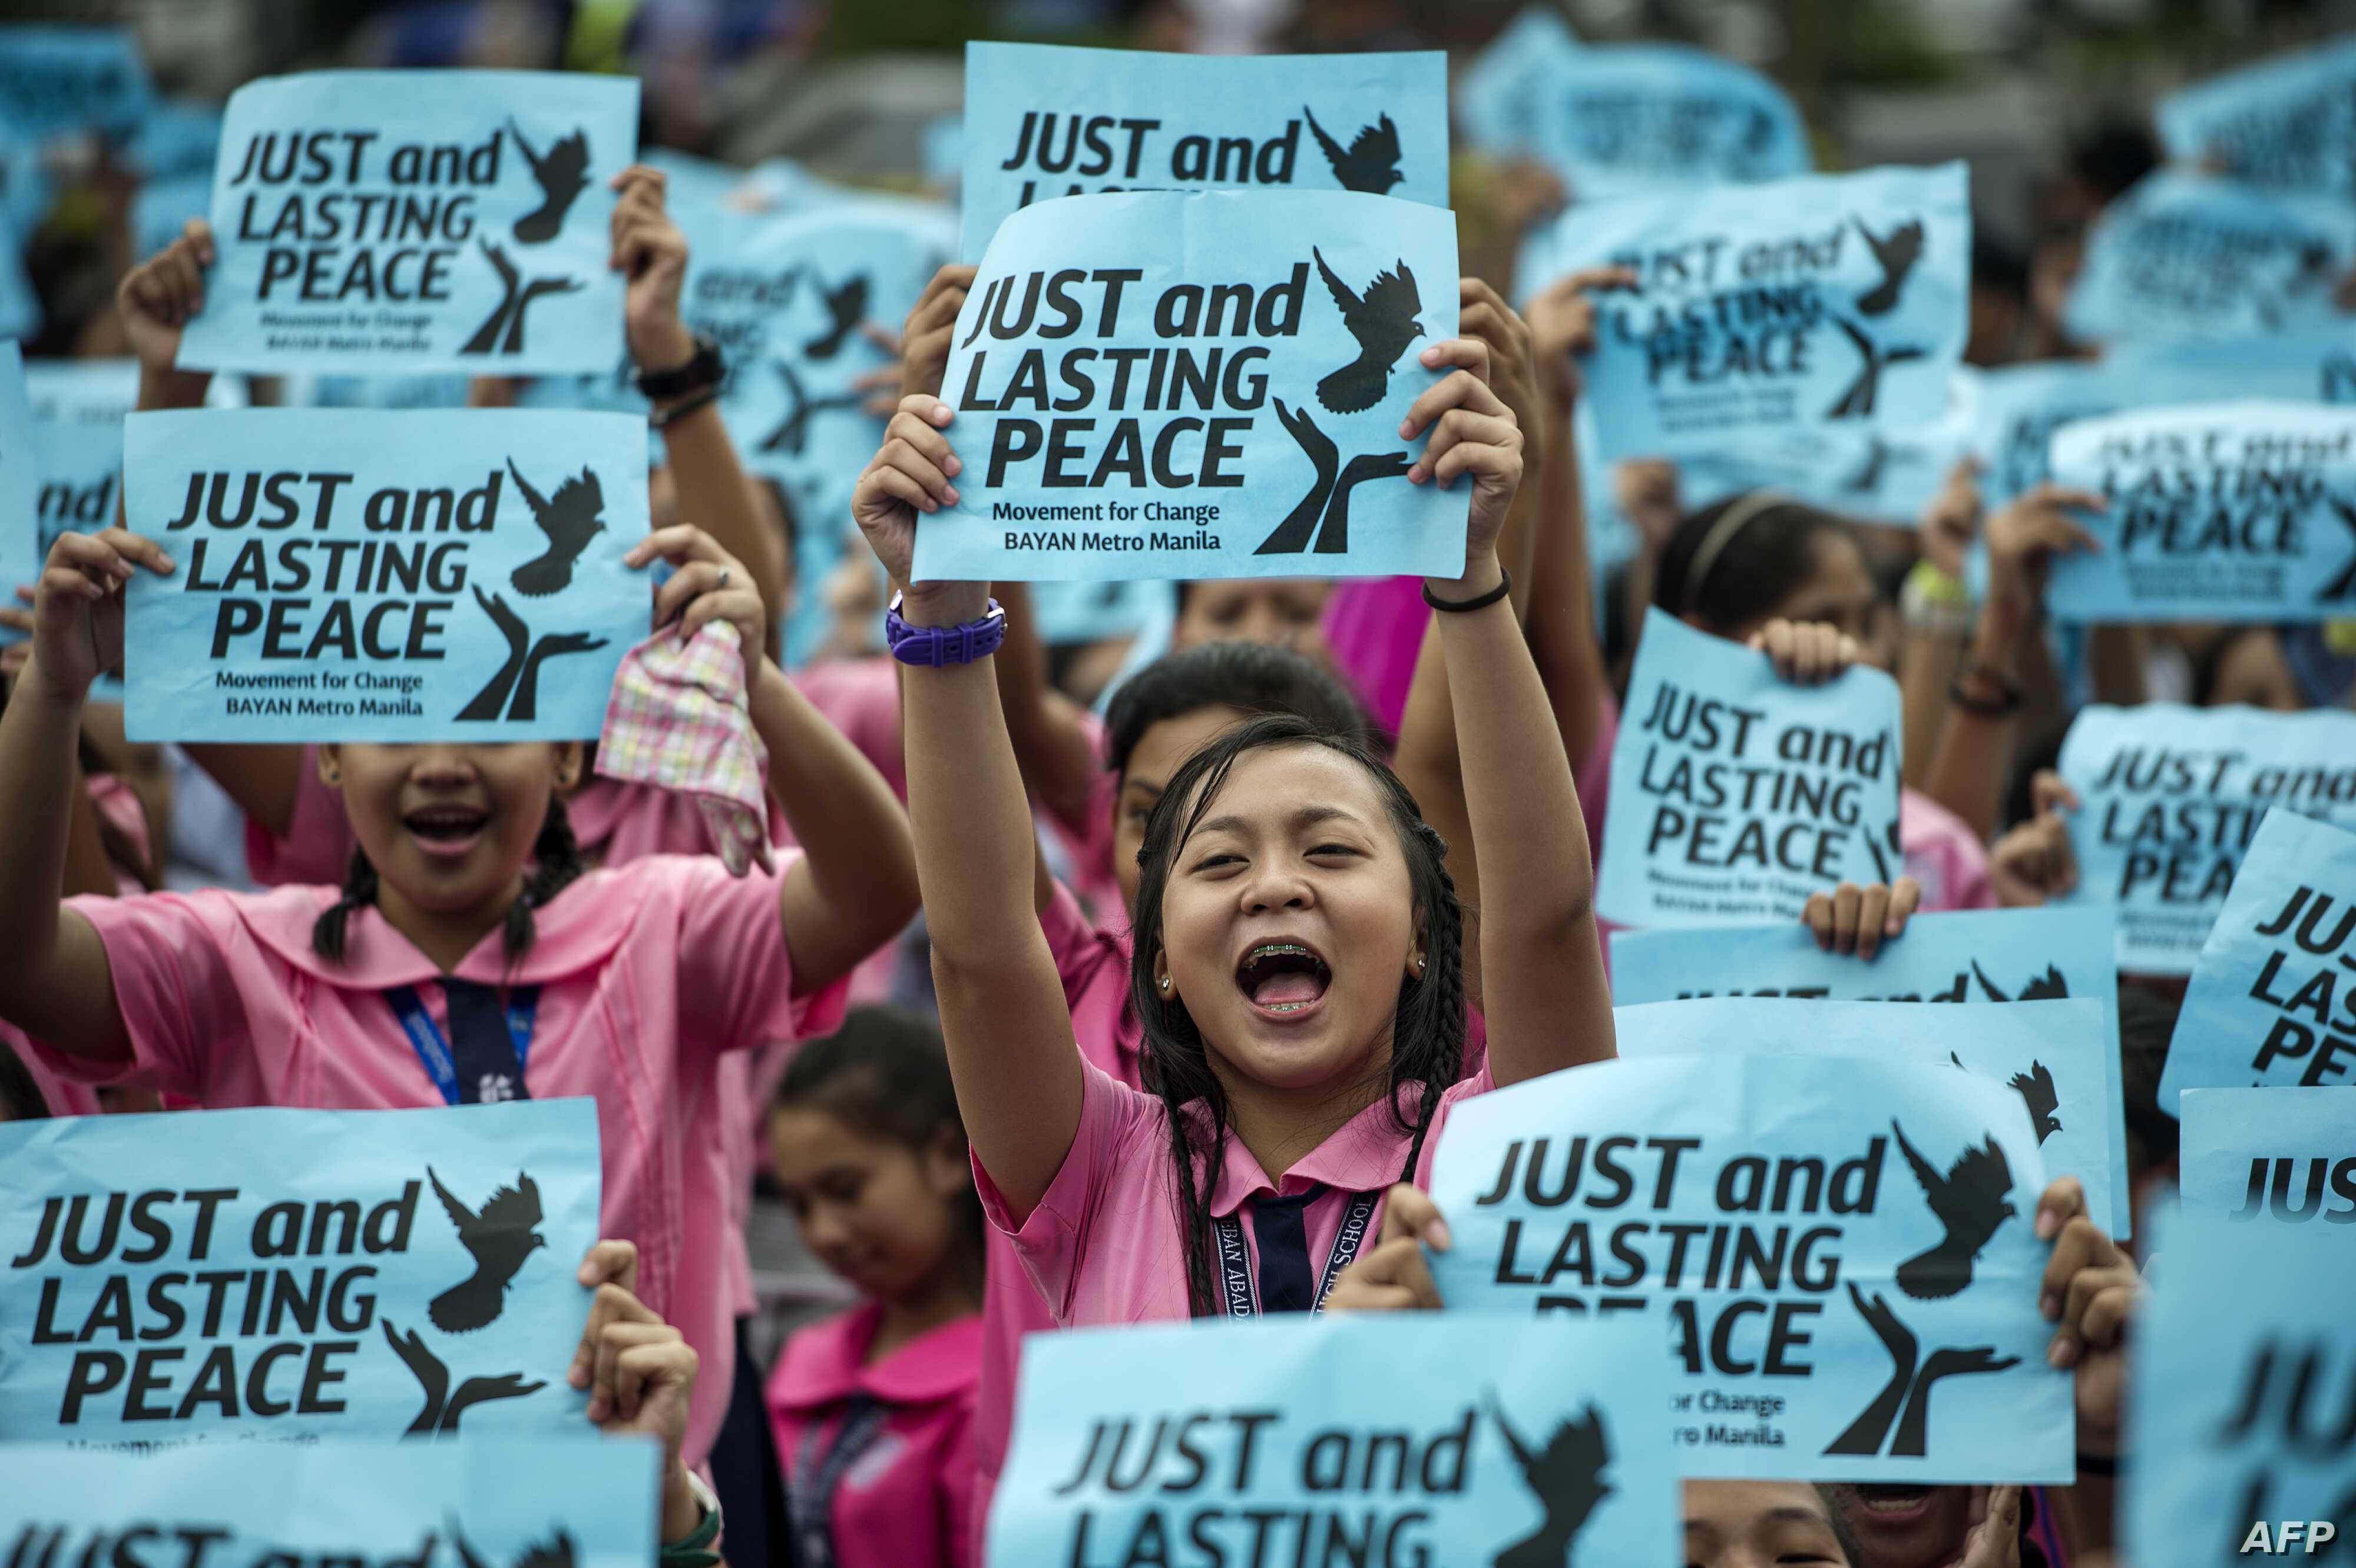 High school students hold banners calling for just and lasting peace as Philippine President Rodrigo Duterte marks his first 100 days in office in Manila, Oct. 7, 2016.